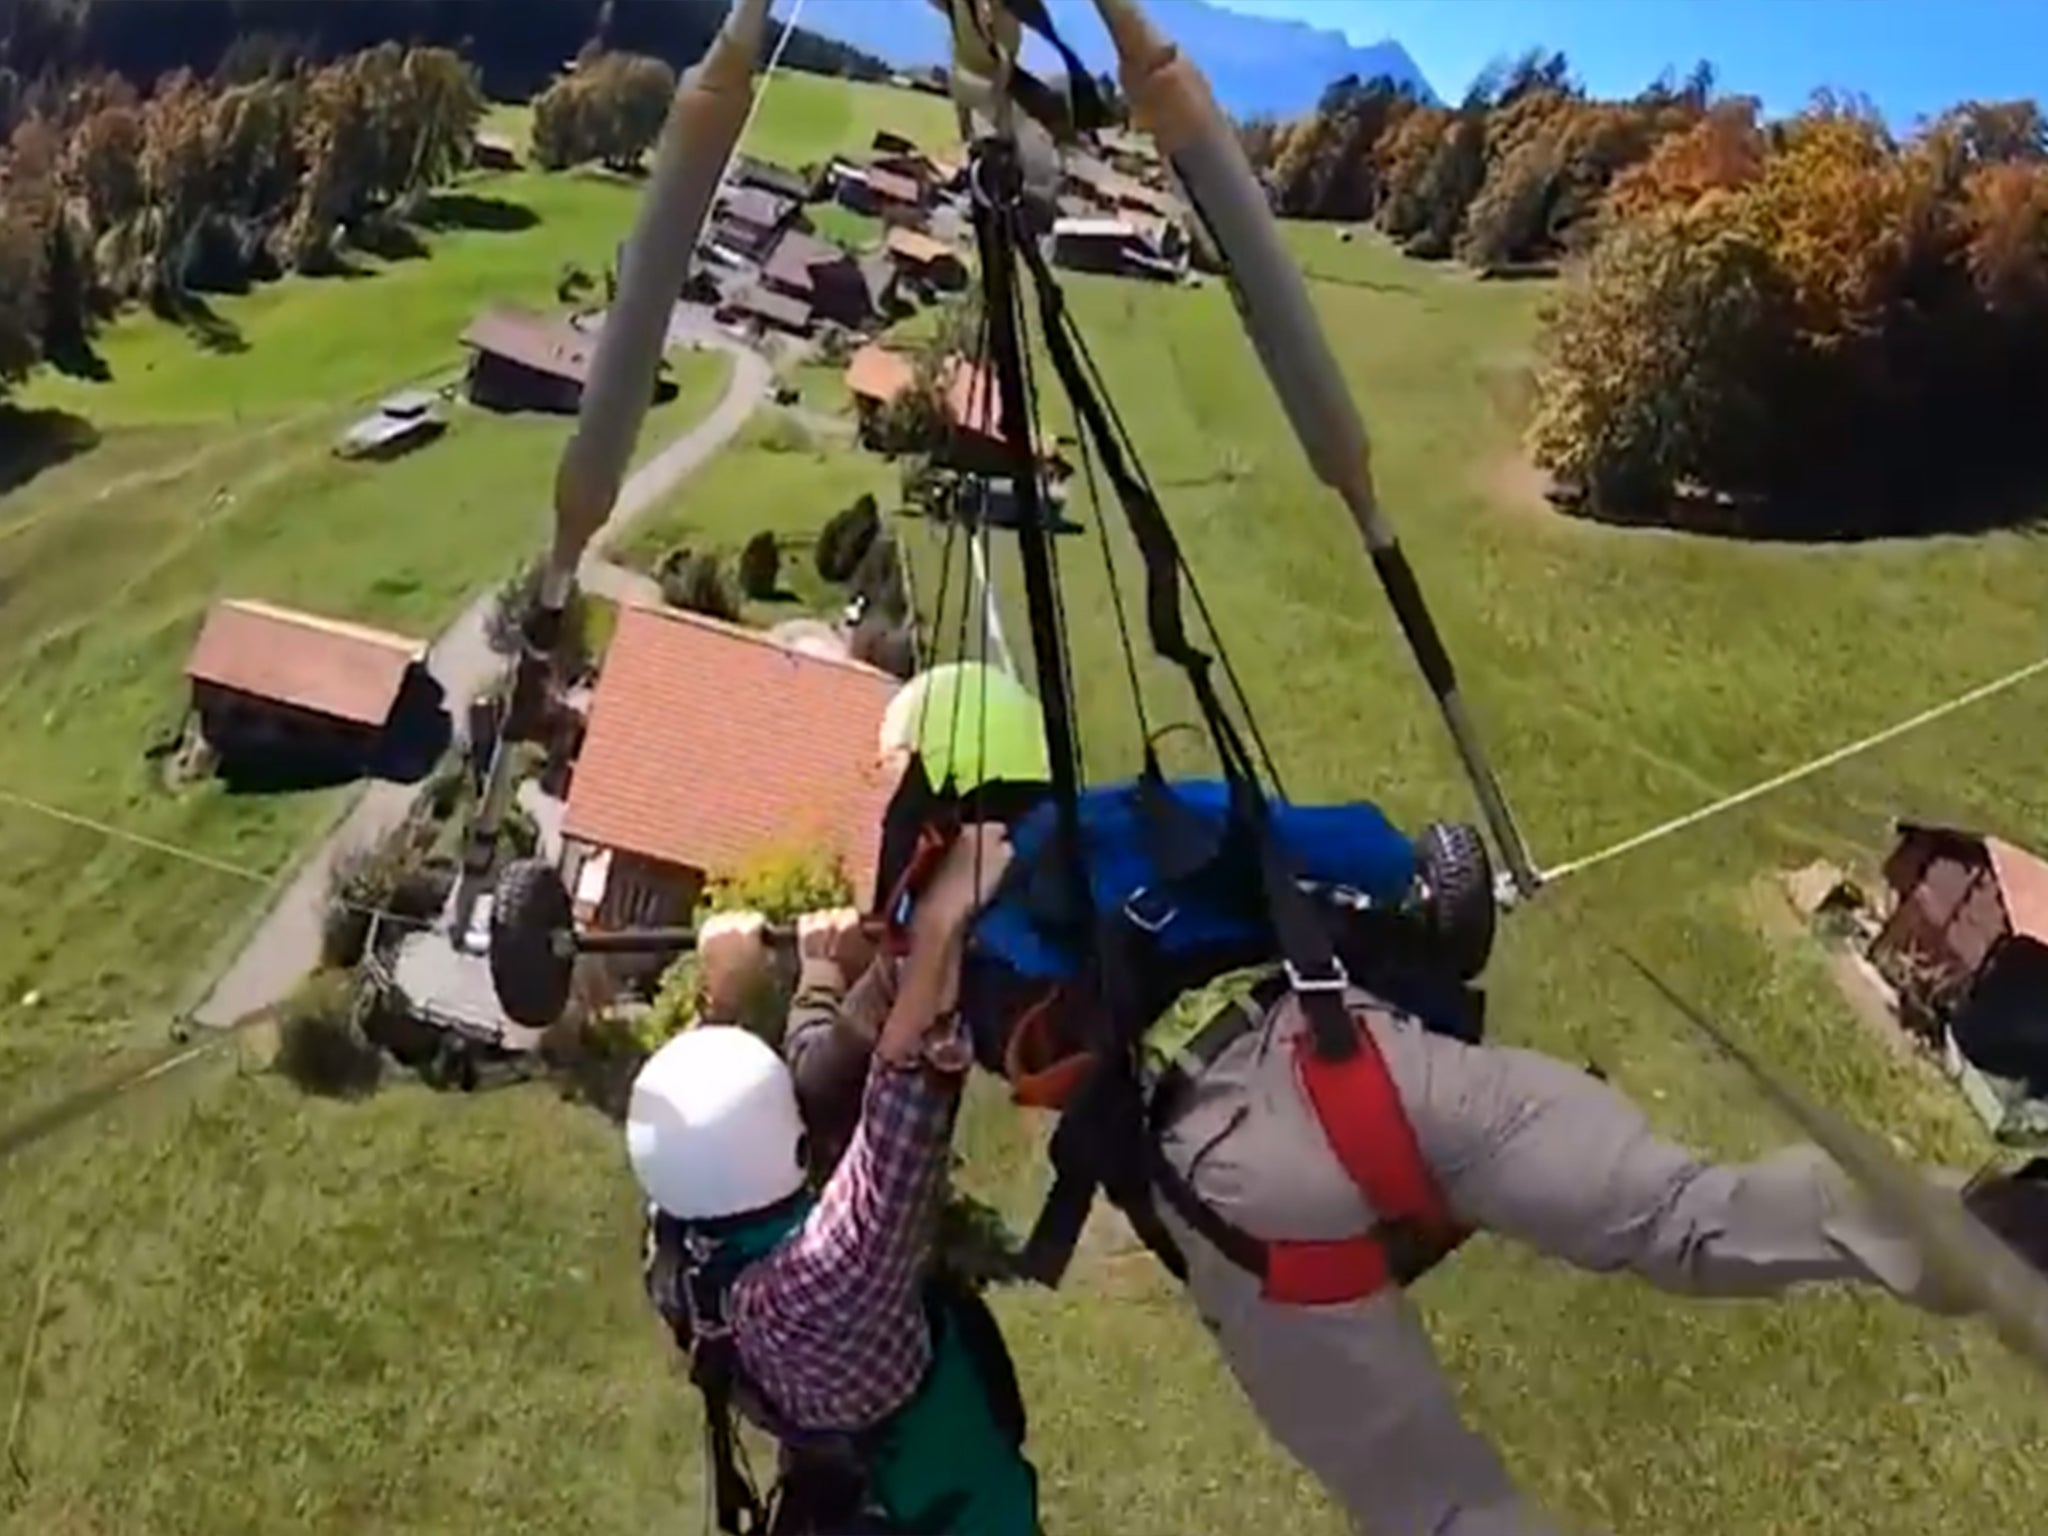 Hang glider desperately clings on after pilot forgets to attach him